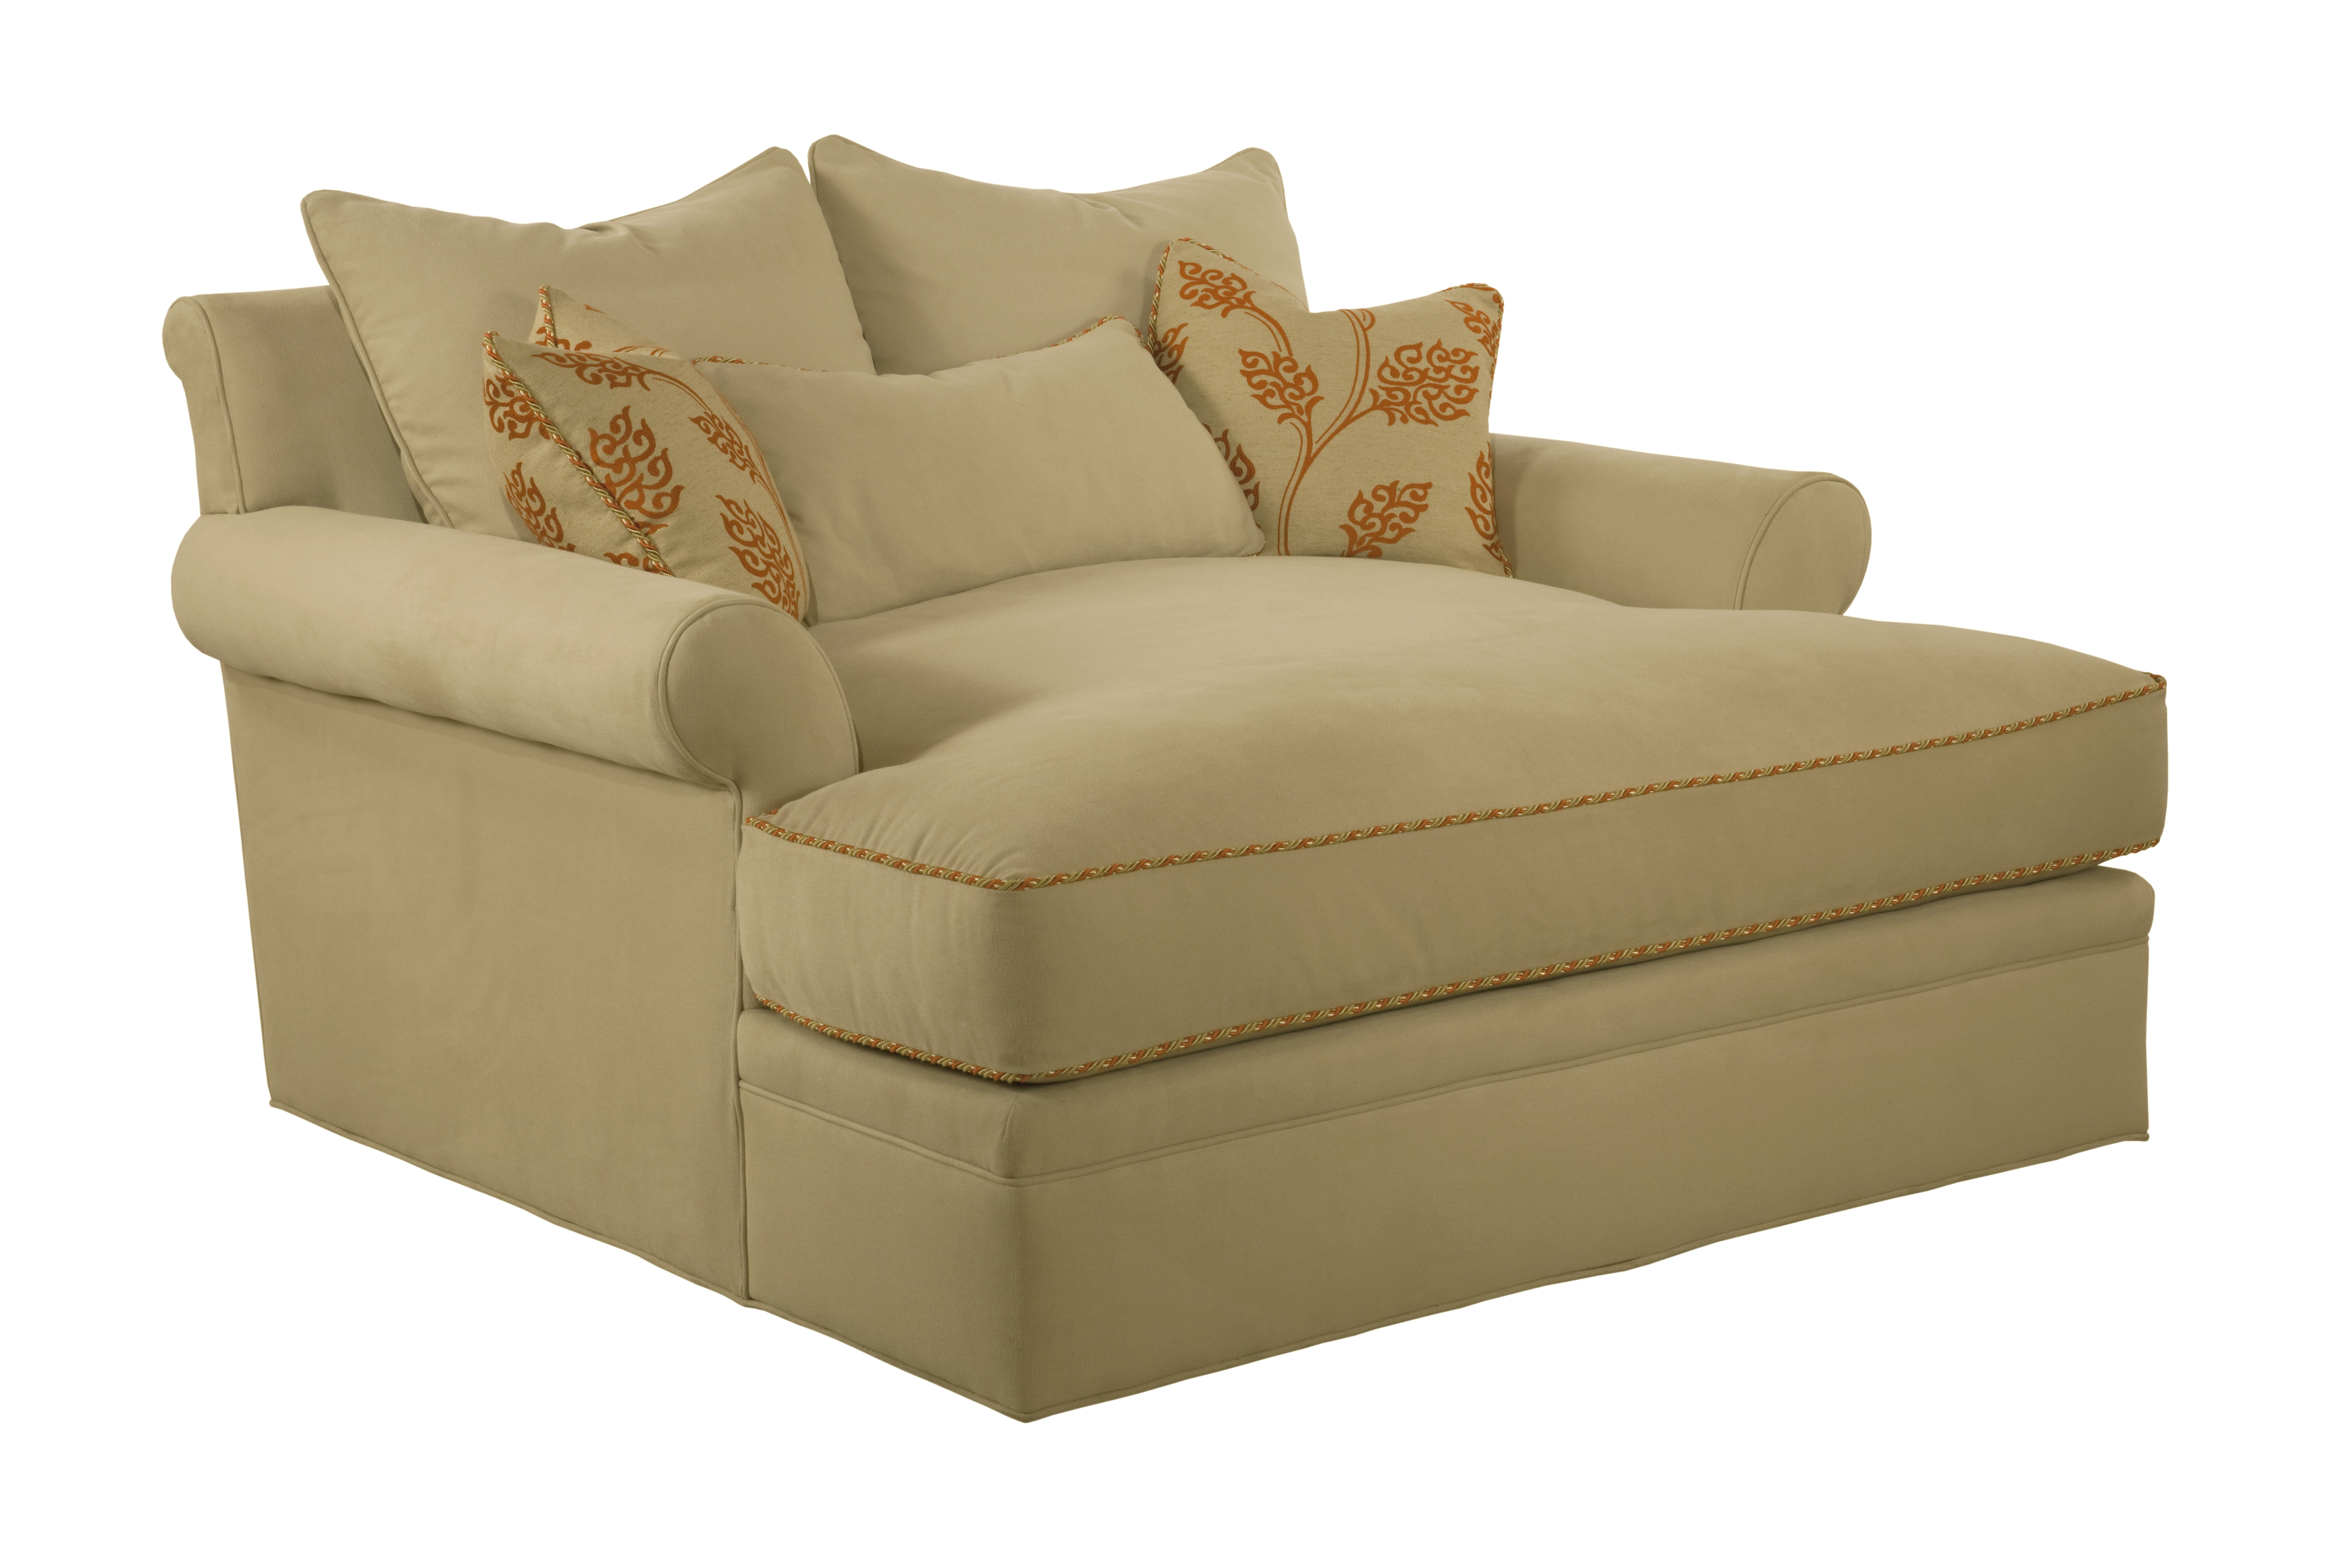 986 60 Claire Chaise